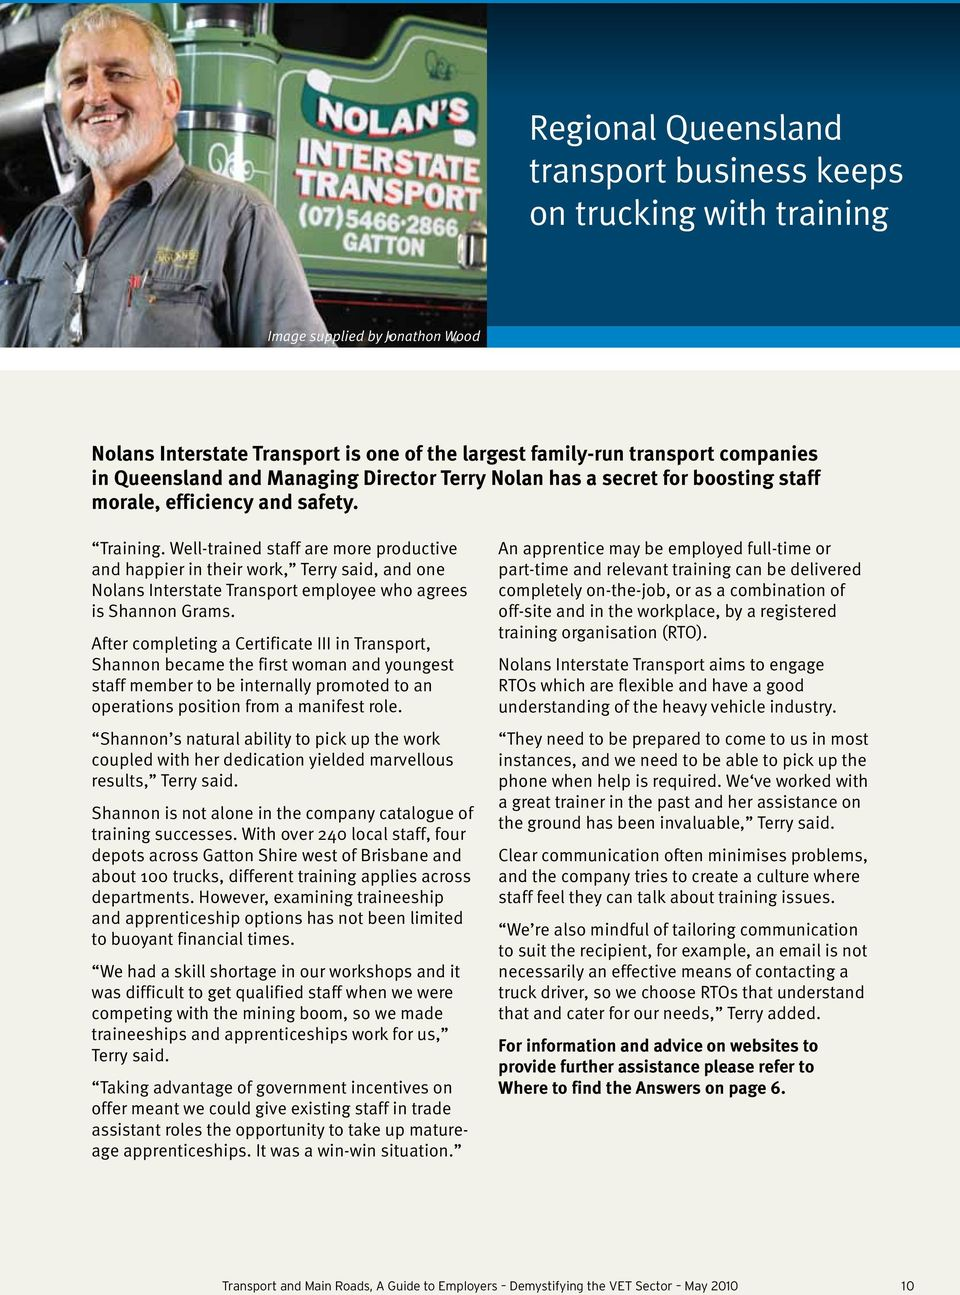 Well-trained staff are more productive and happier in their work, Terry said, and one Nolans Interstate Transport employee who agrees is Shannon Grams.